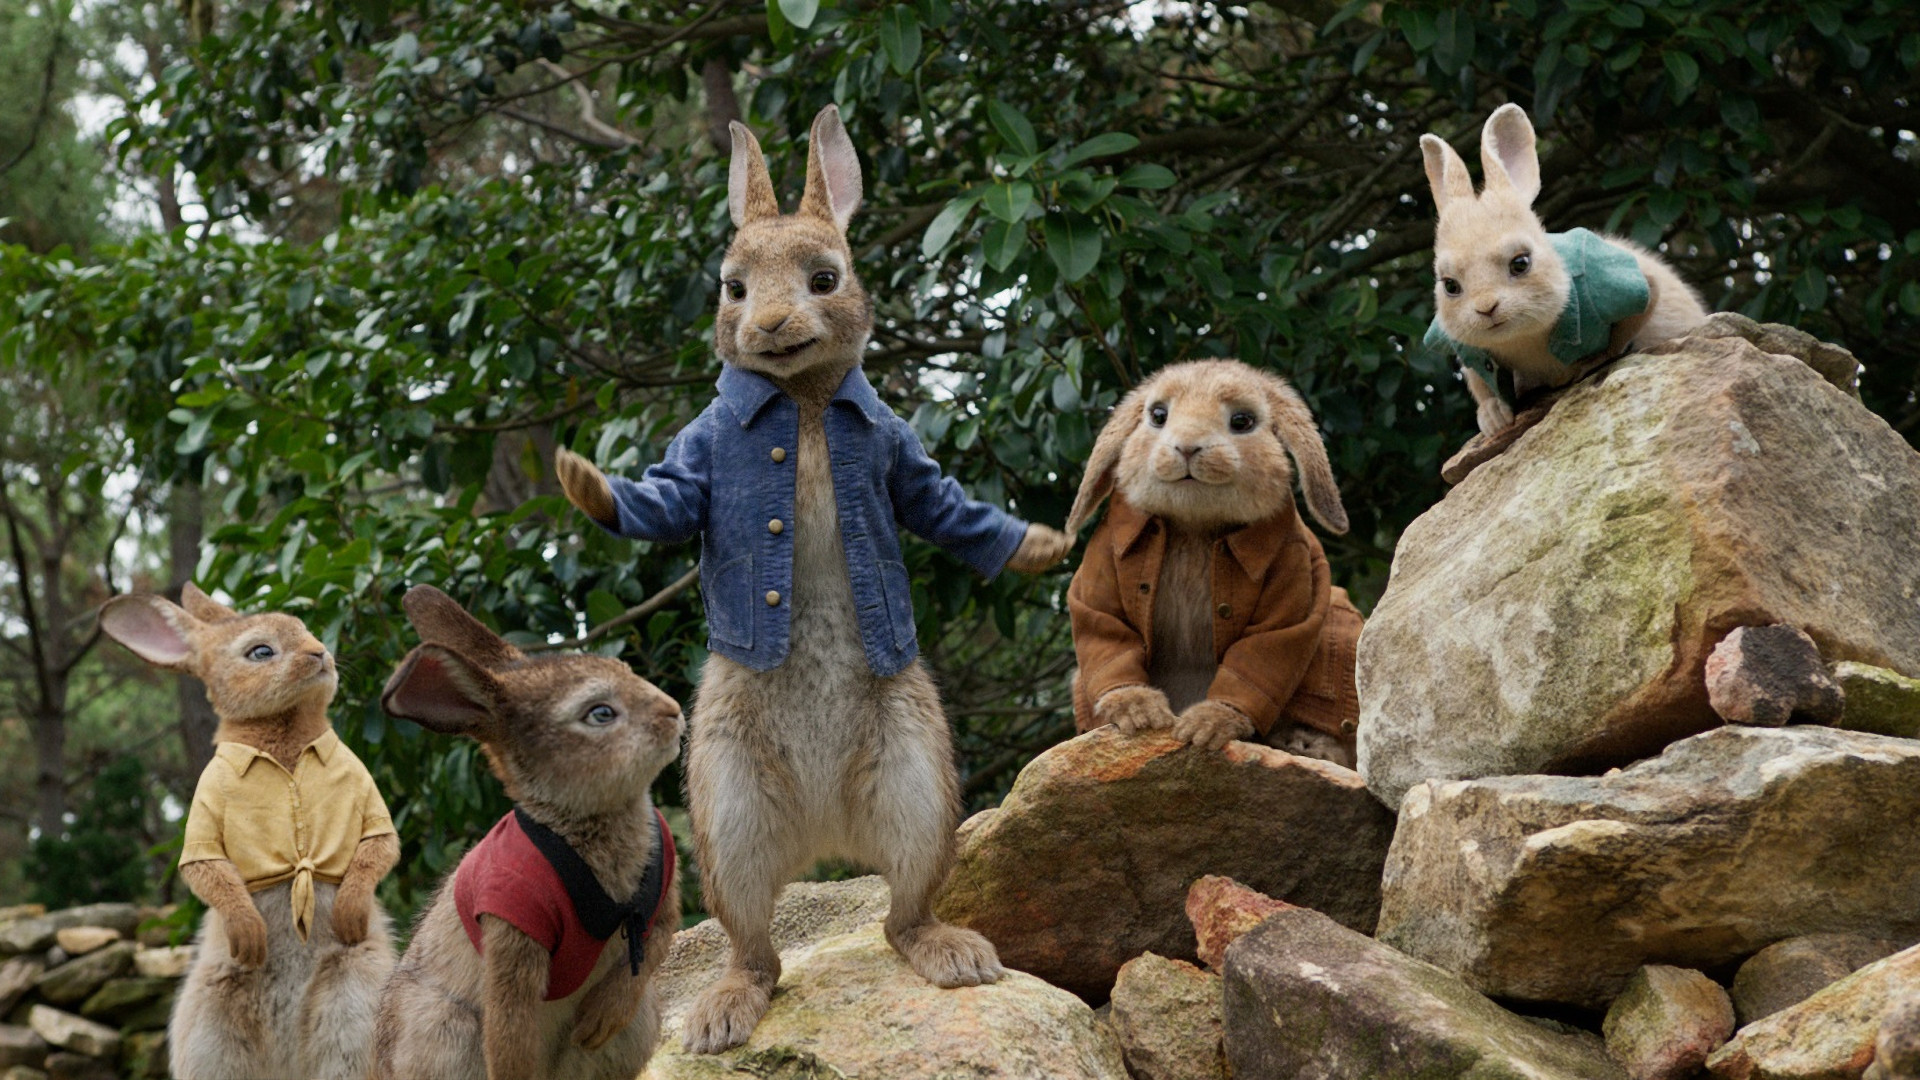 1920x1080 Peter Rabbit Movie Characters 2018 HD #4744